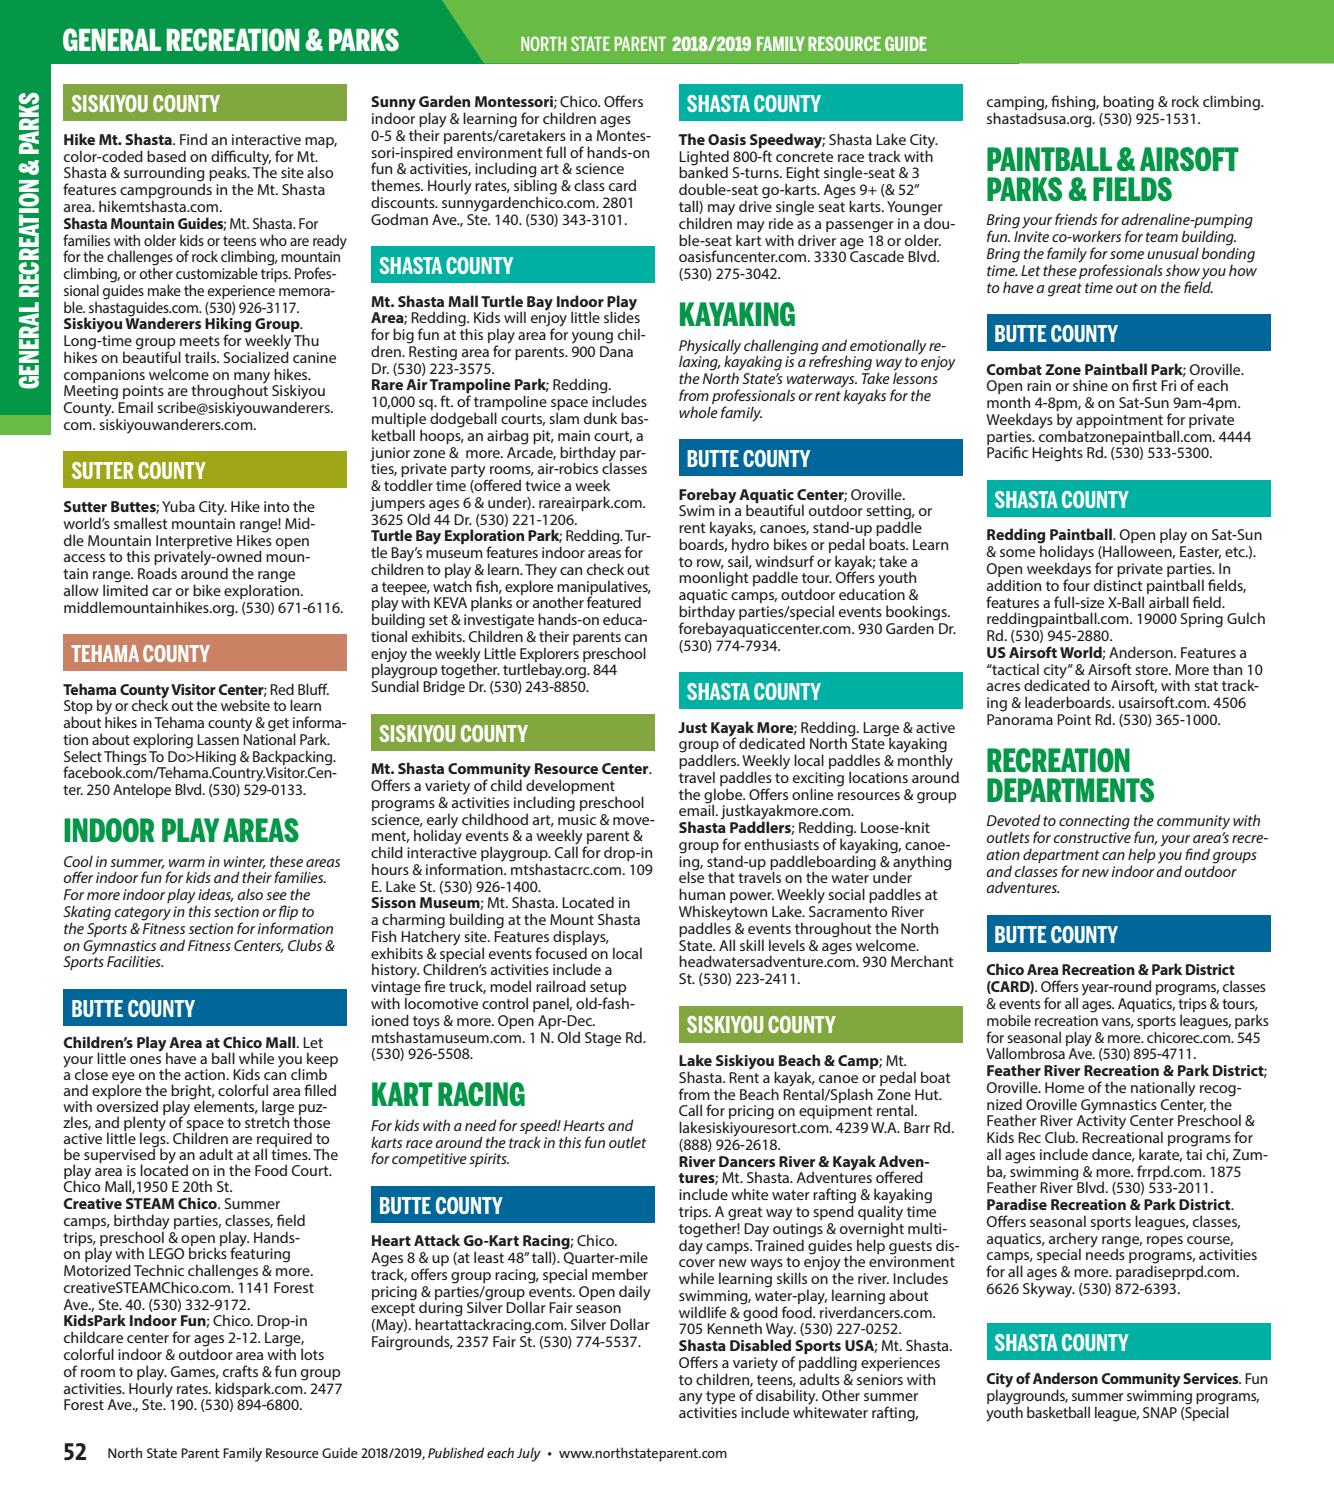 Annual Family Resource Guide By North State Parent Magazine